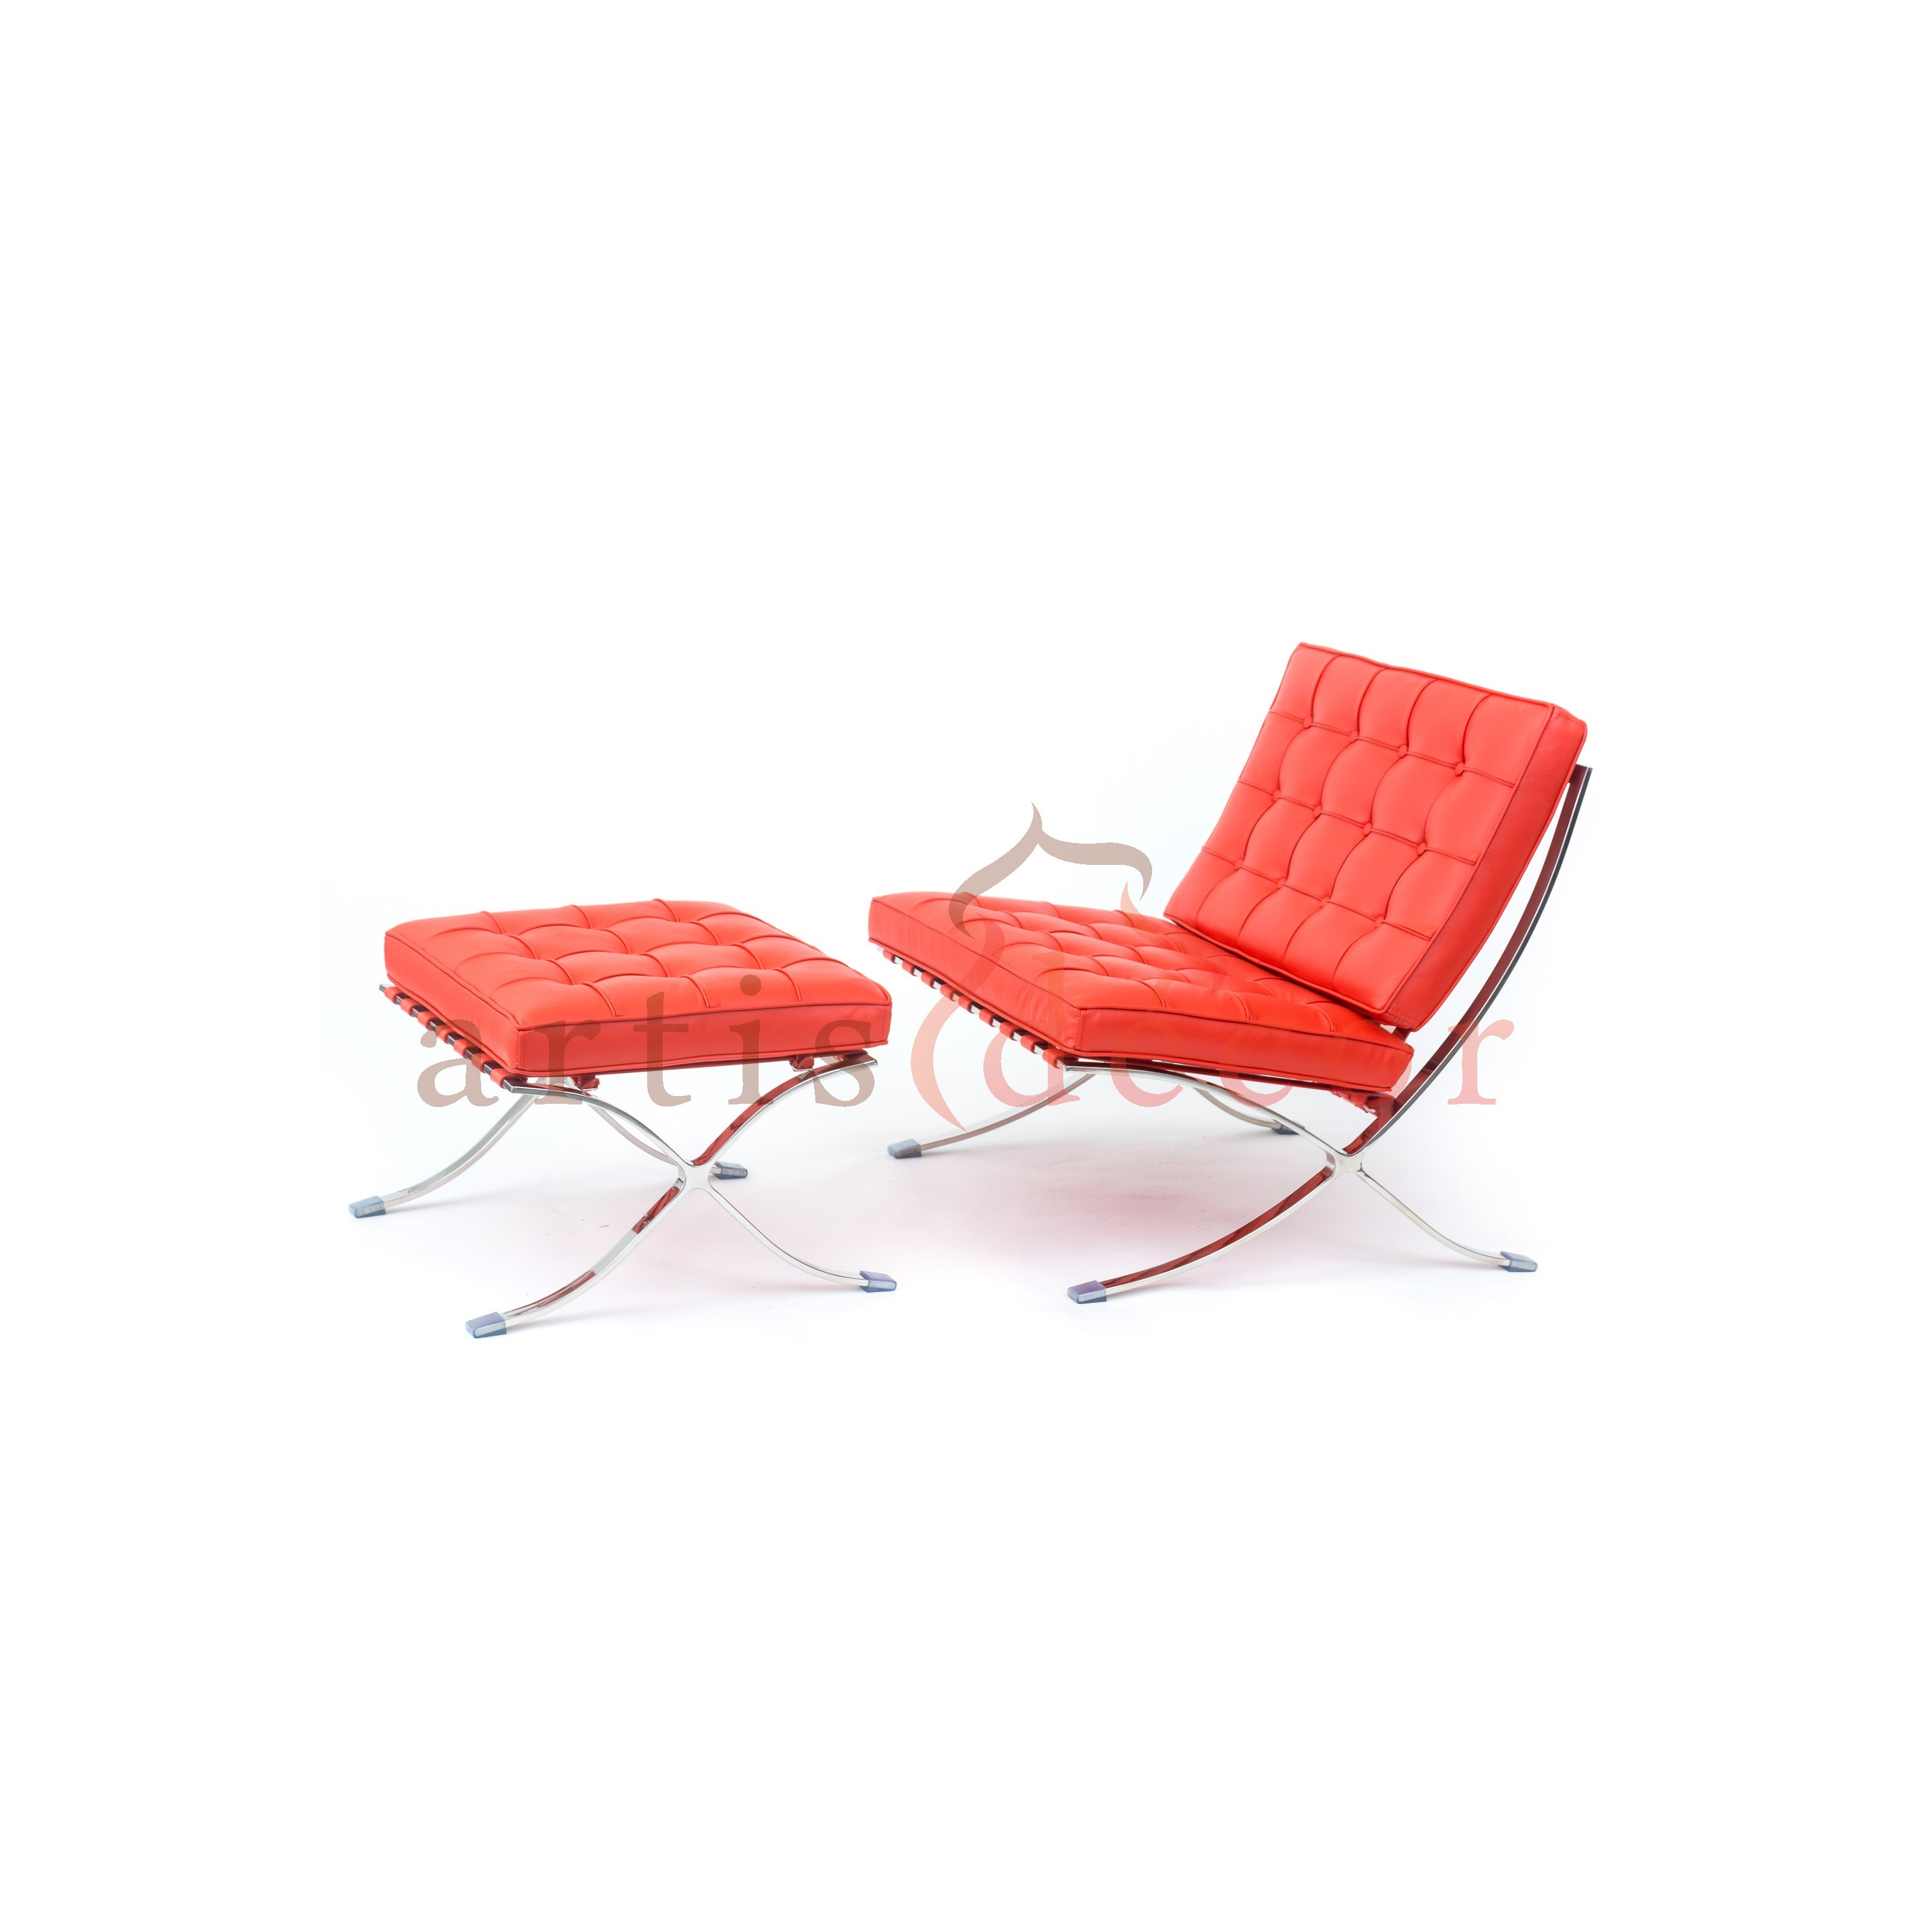 Barcelona Style Premium Lounge Chair and Ottoman White  : k8 from www.artisdecor.com size 3000 x 3000 jpeg 337kB